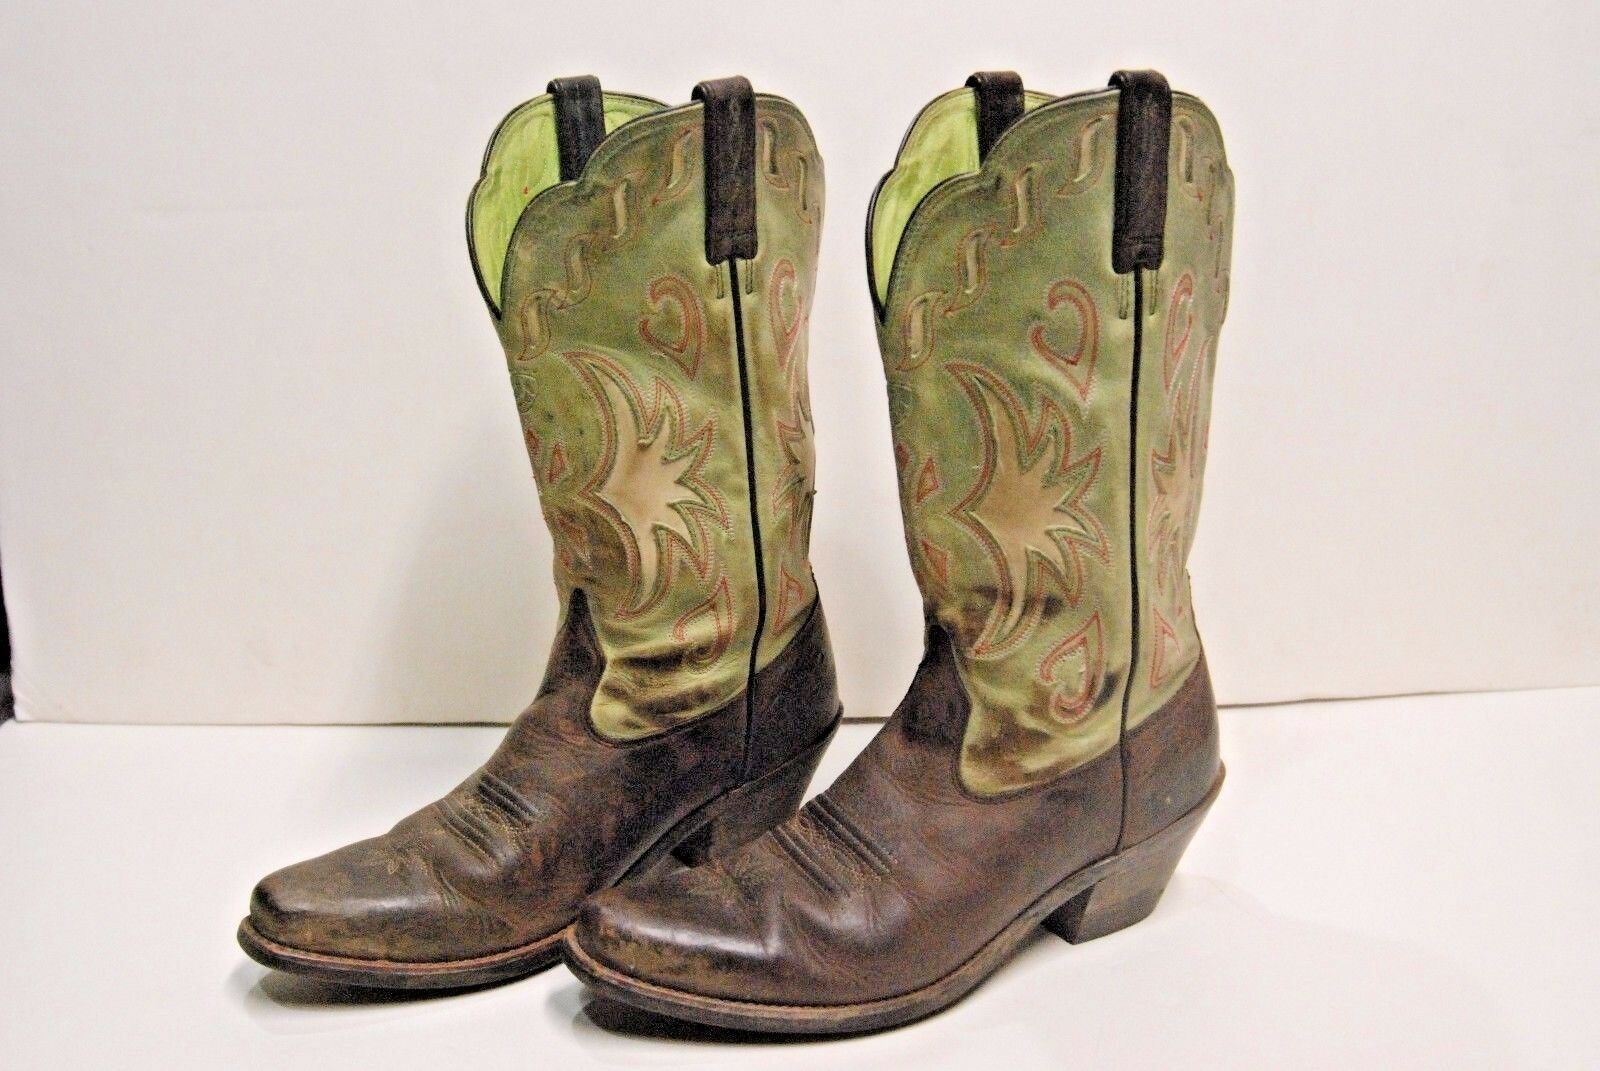 Ariat Boots size 7.5 Style 15571 Western cowboy boots